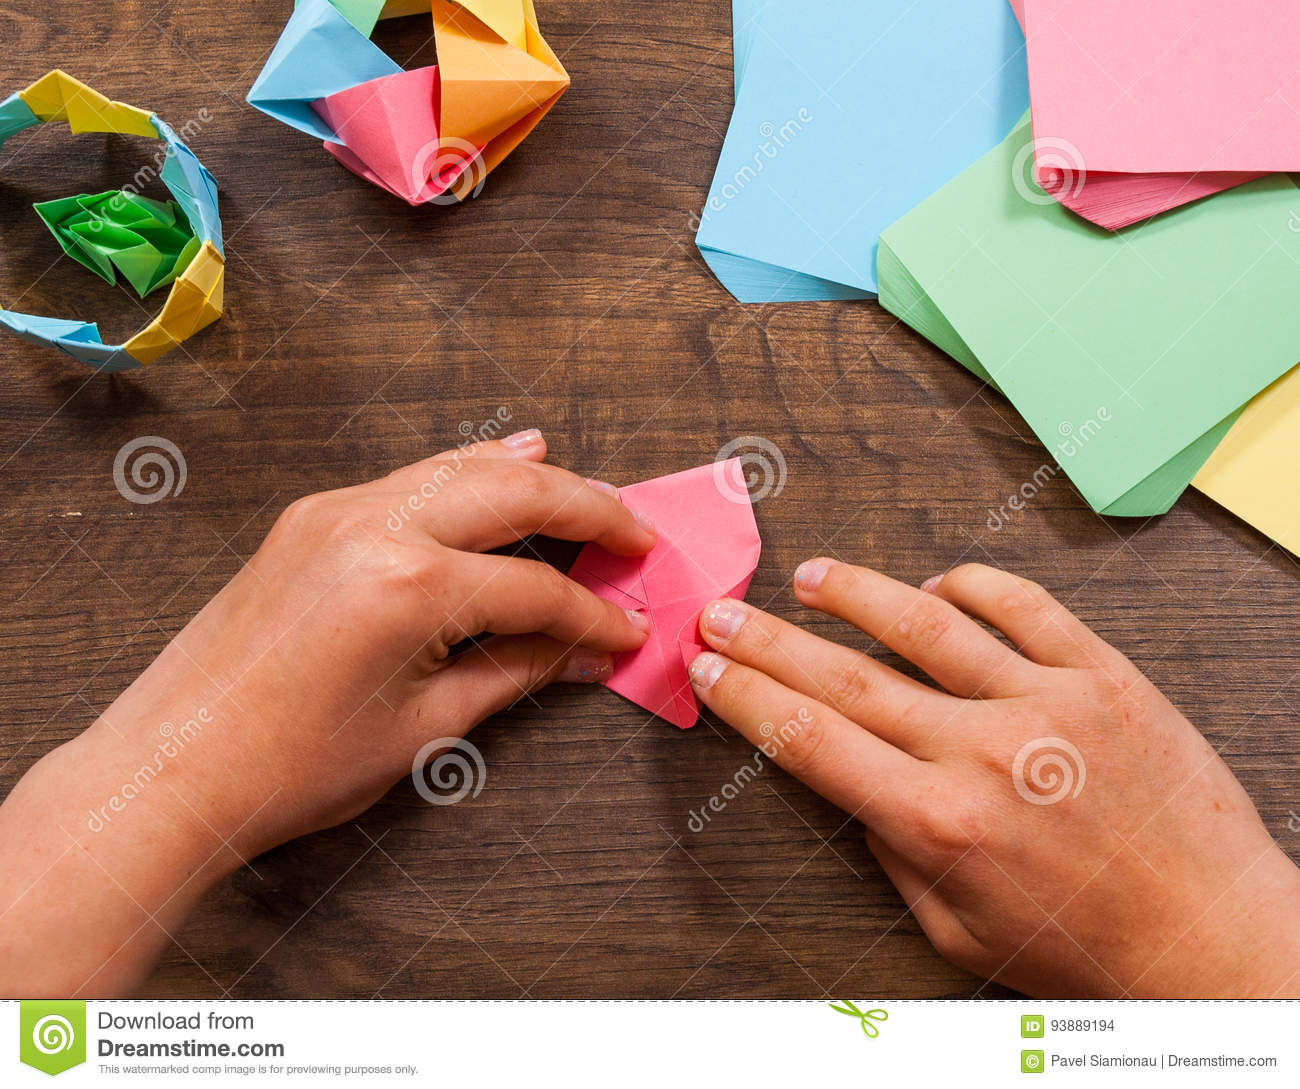 What can be made of paper origami